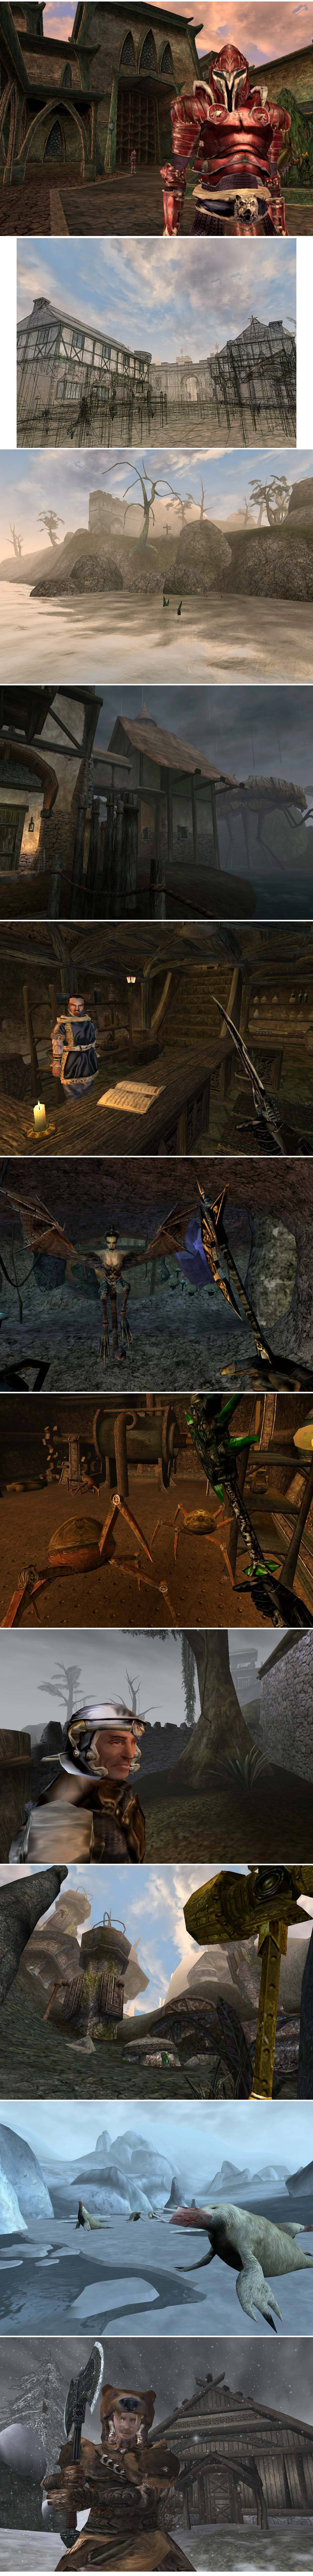 the_elder_scrolls_iii:_morrowind_goty_openmw041